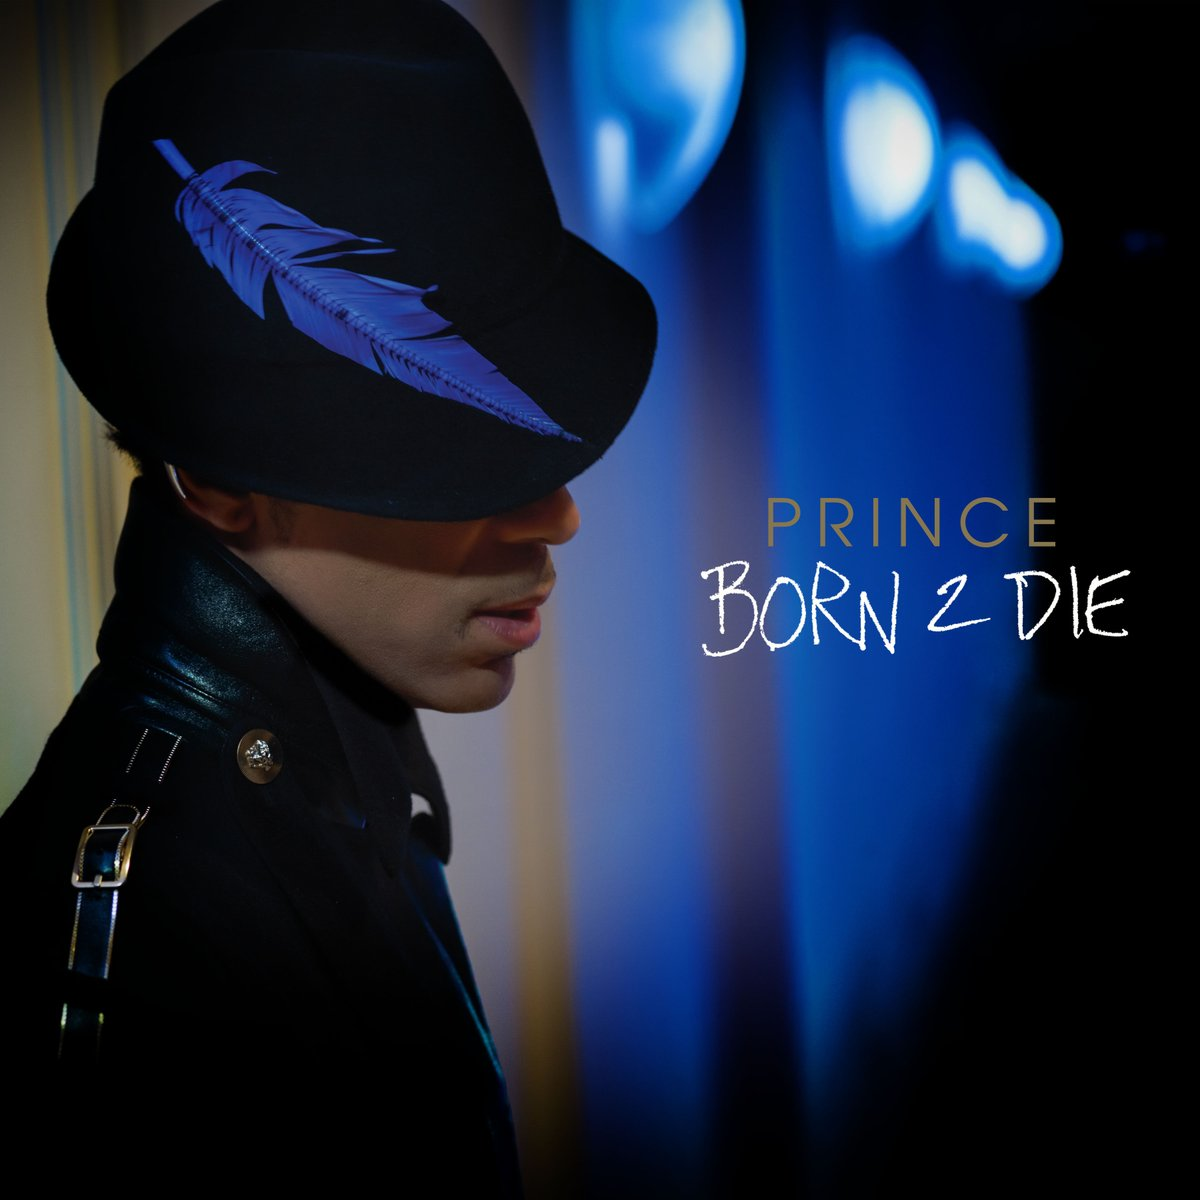 """The previously unreleased track """"Born 2 Die"""" has just been released from Prince's legendary vault. The song was recorded in the spring of 2010 and was intended for his timely and prescient album #Welcome2America. https://t.co/hz2TNPBjTp https://t.co/yTuvqnCLzN"""